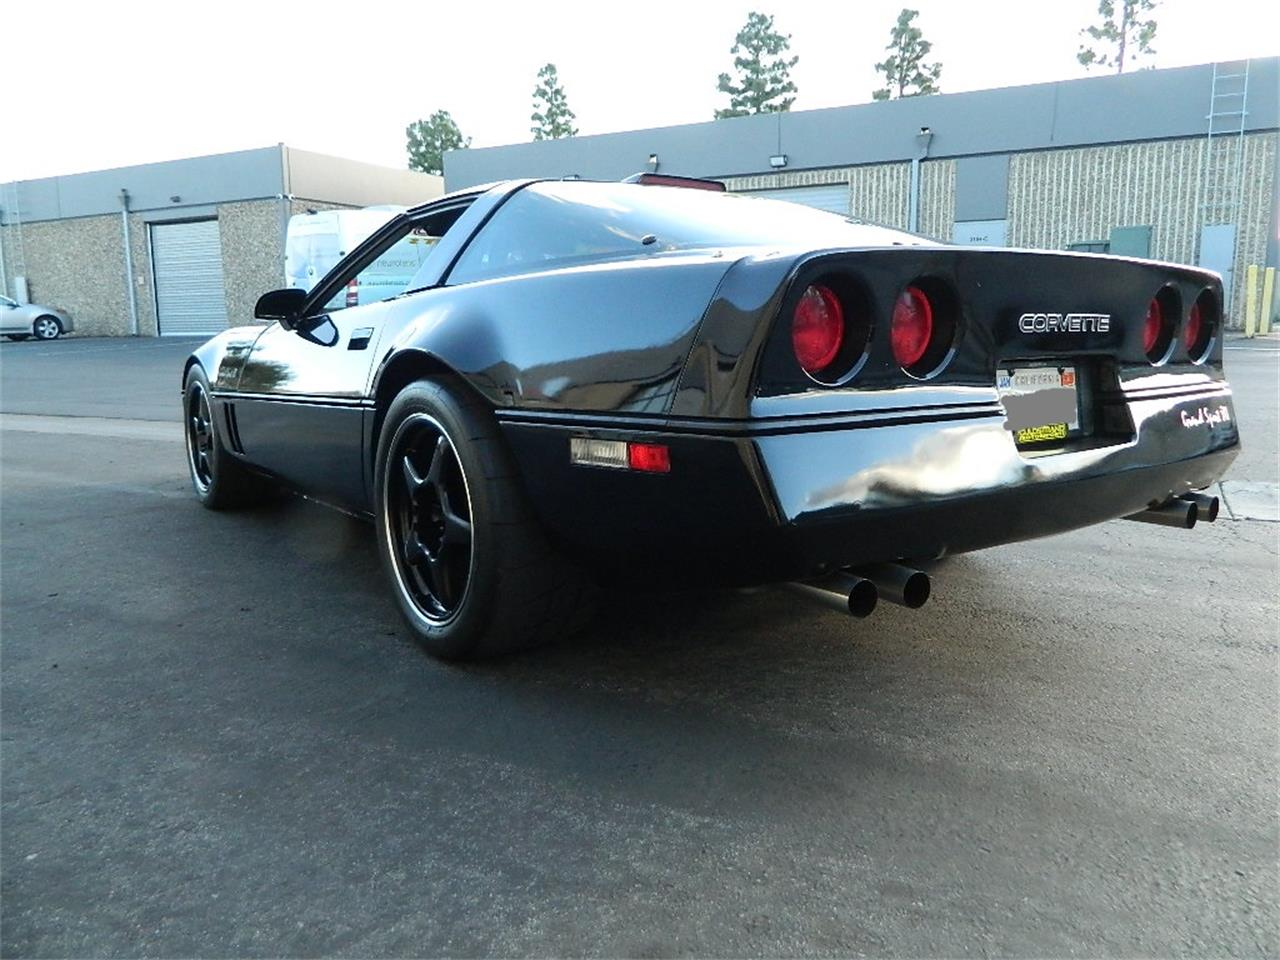 Large Picture of 1988 Corvette located in orange California Offered by Classic Car Marketing, Inc. - P3H8